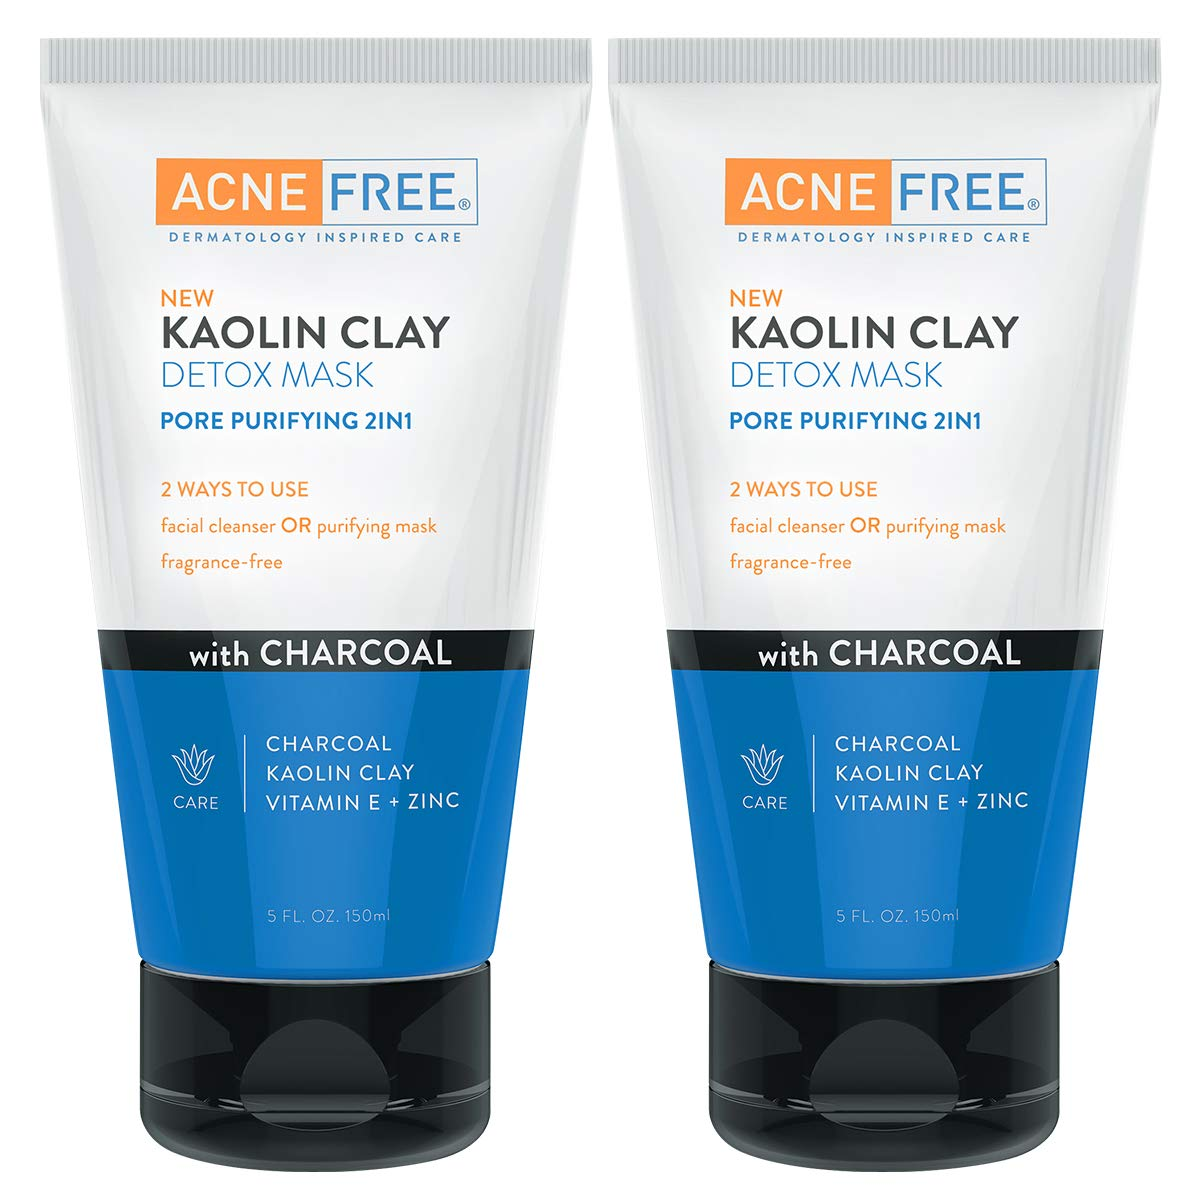 WHOLESALE ACNE FREE KAOLIN CLAY DETOX MASK 5 OZ (PACK OF 2) - 48 PIECE LOT